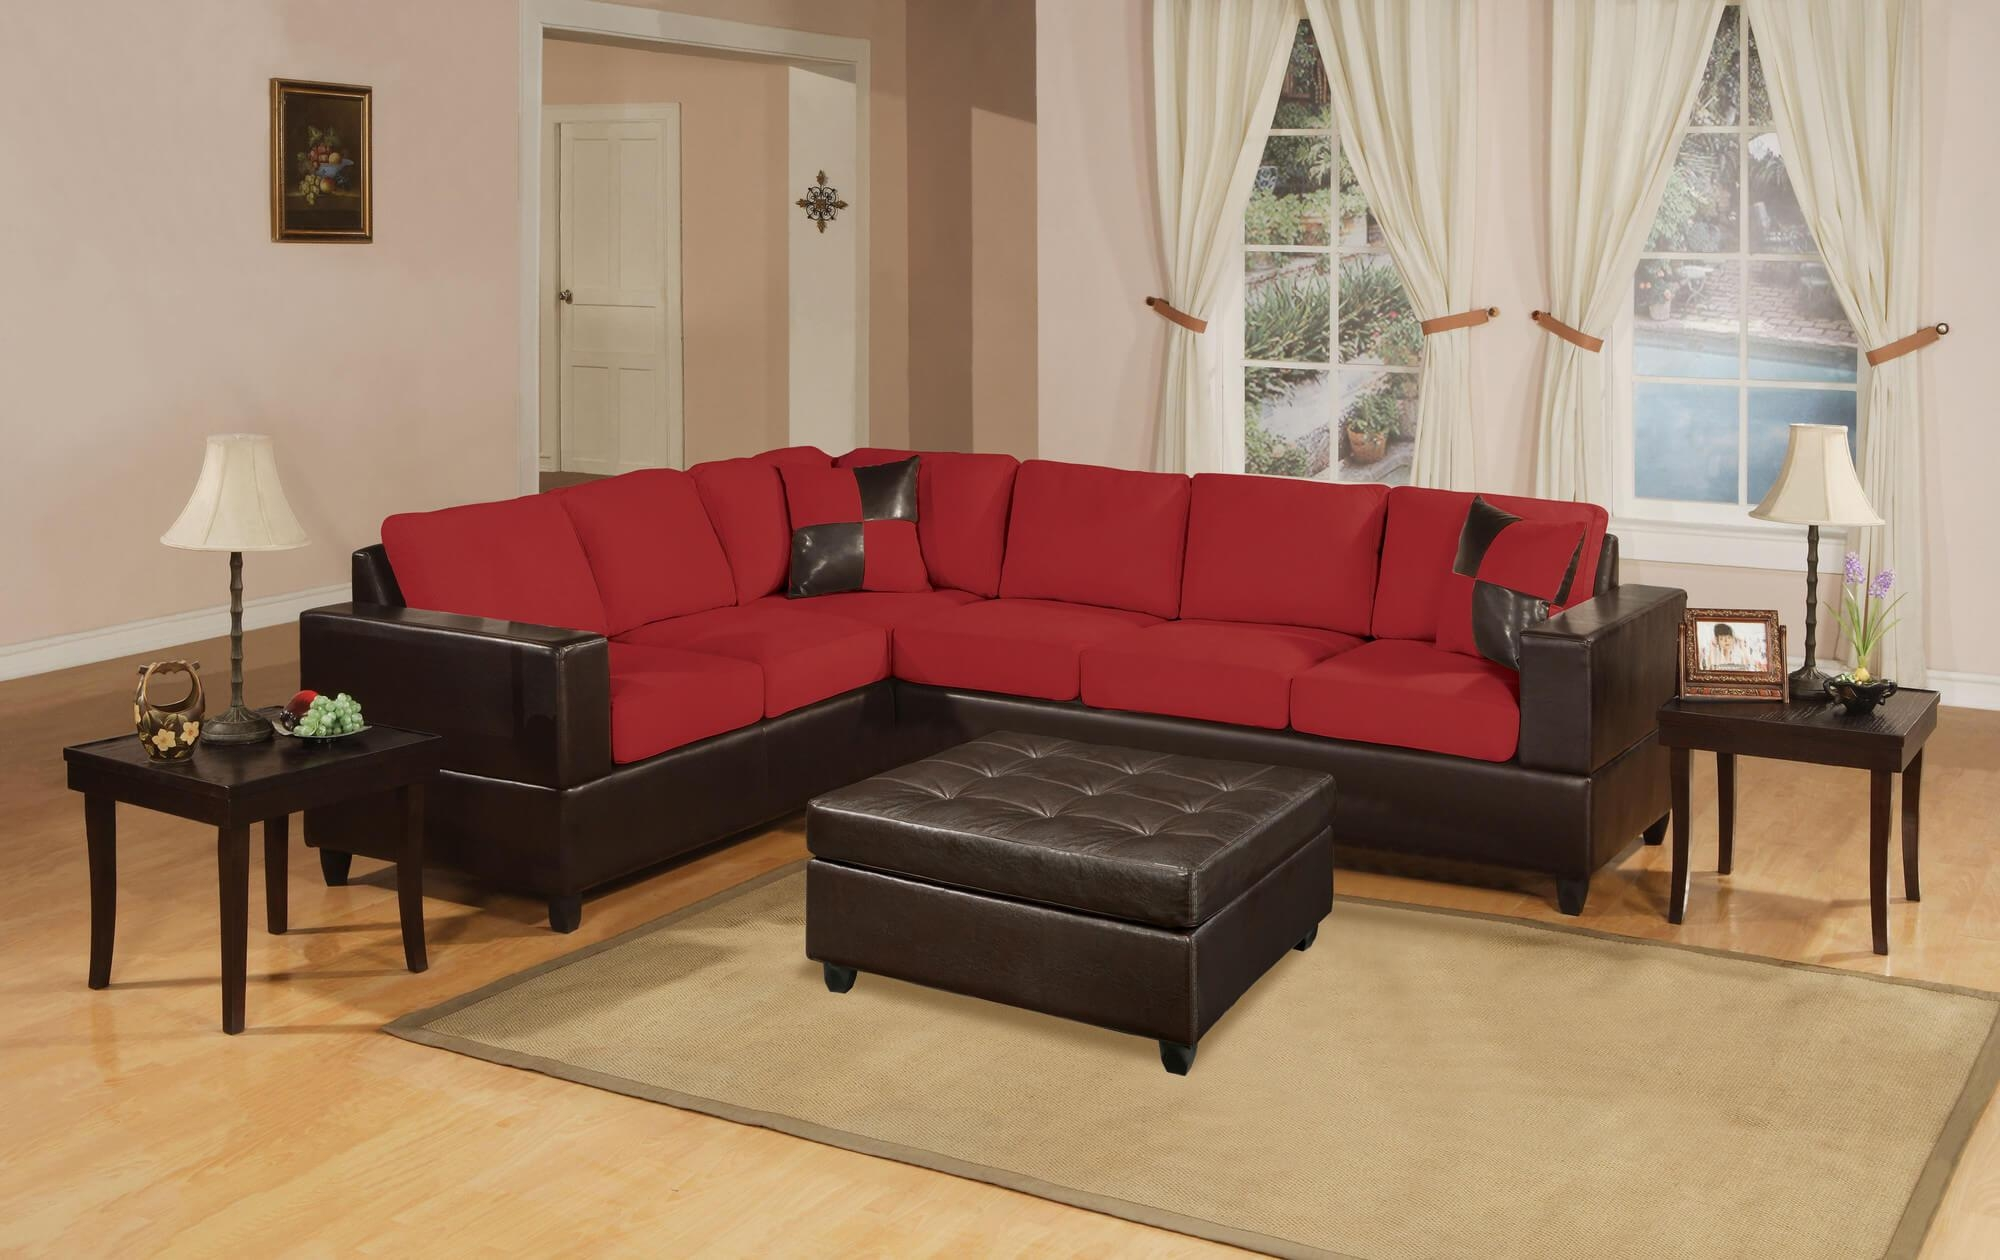 Sofas : Amazing Brown Sectional Couch Leather Chaise Sofa Throughout Red Microfiber Sectional Sofas (View 18 of 21)